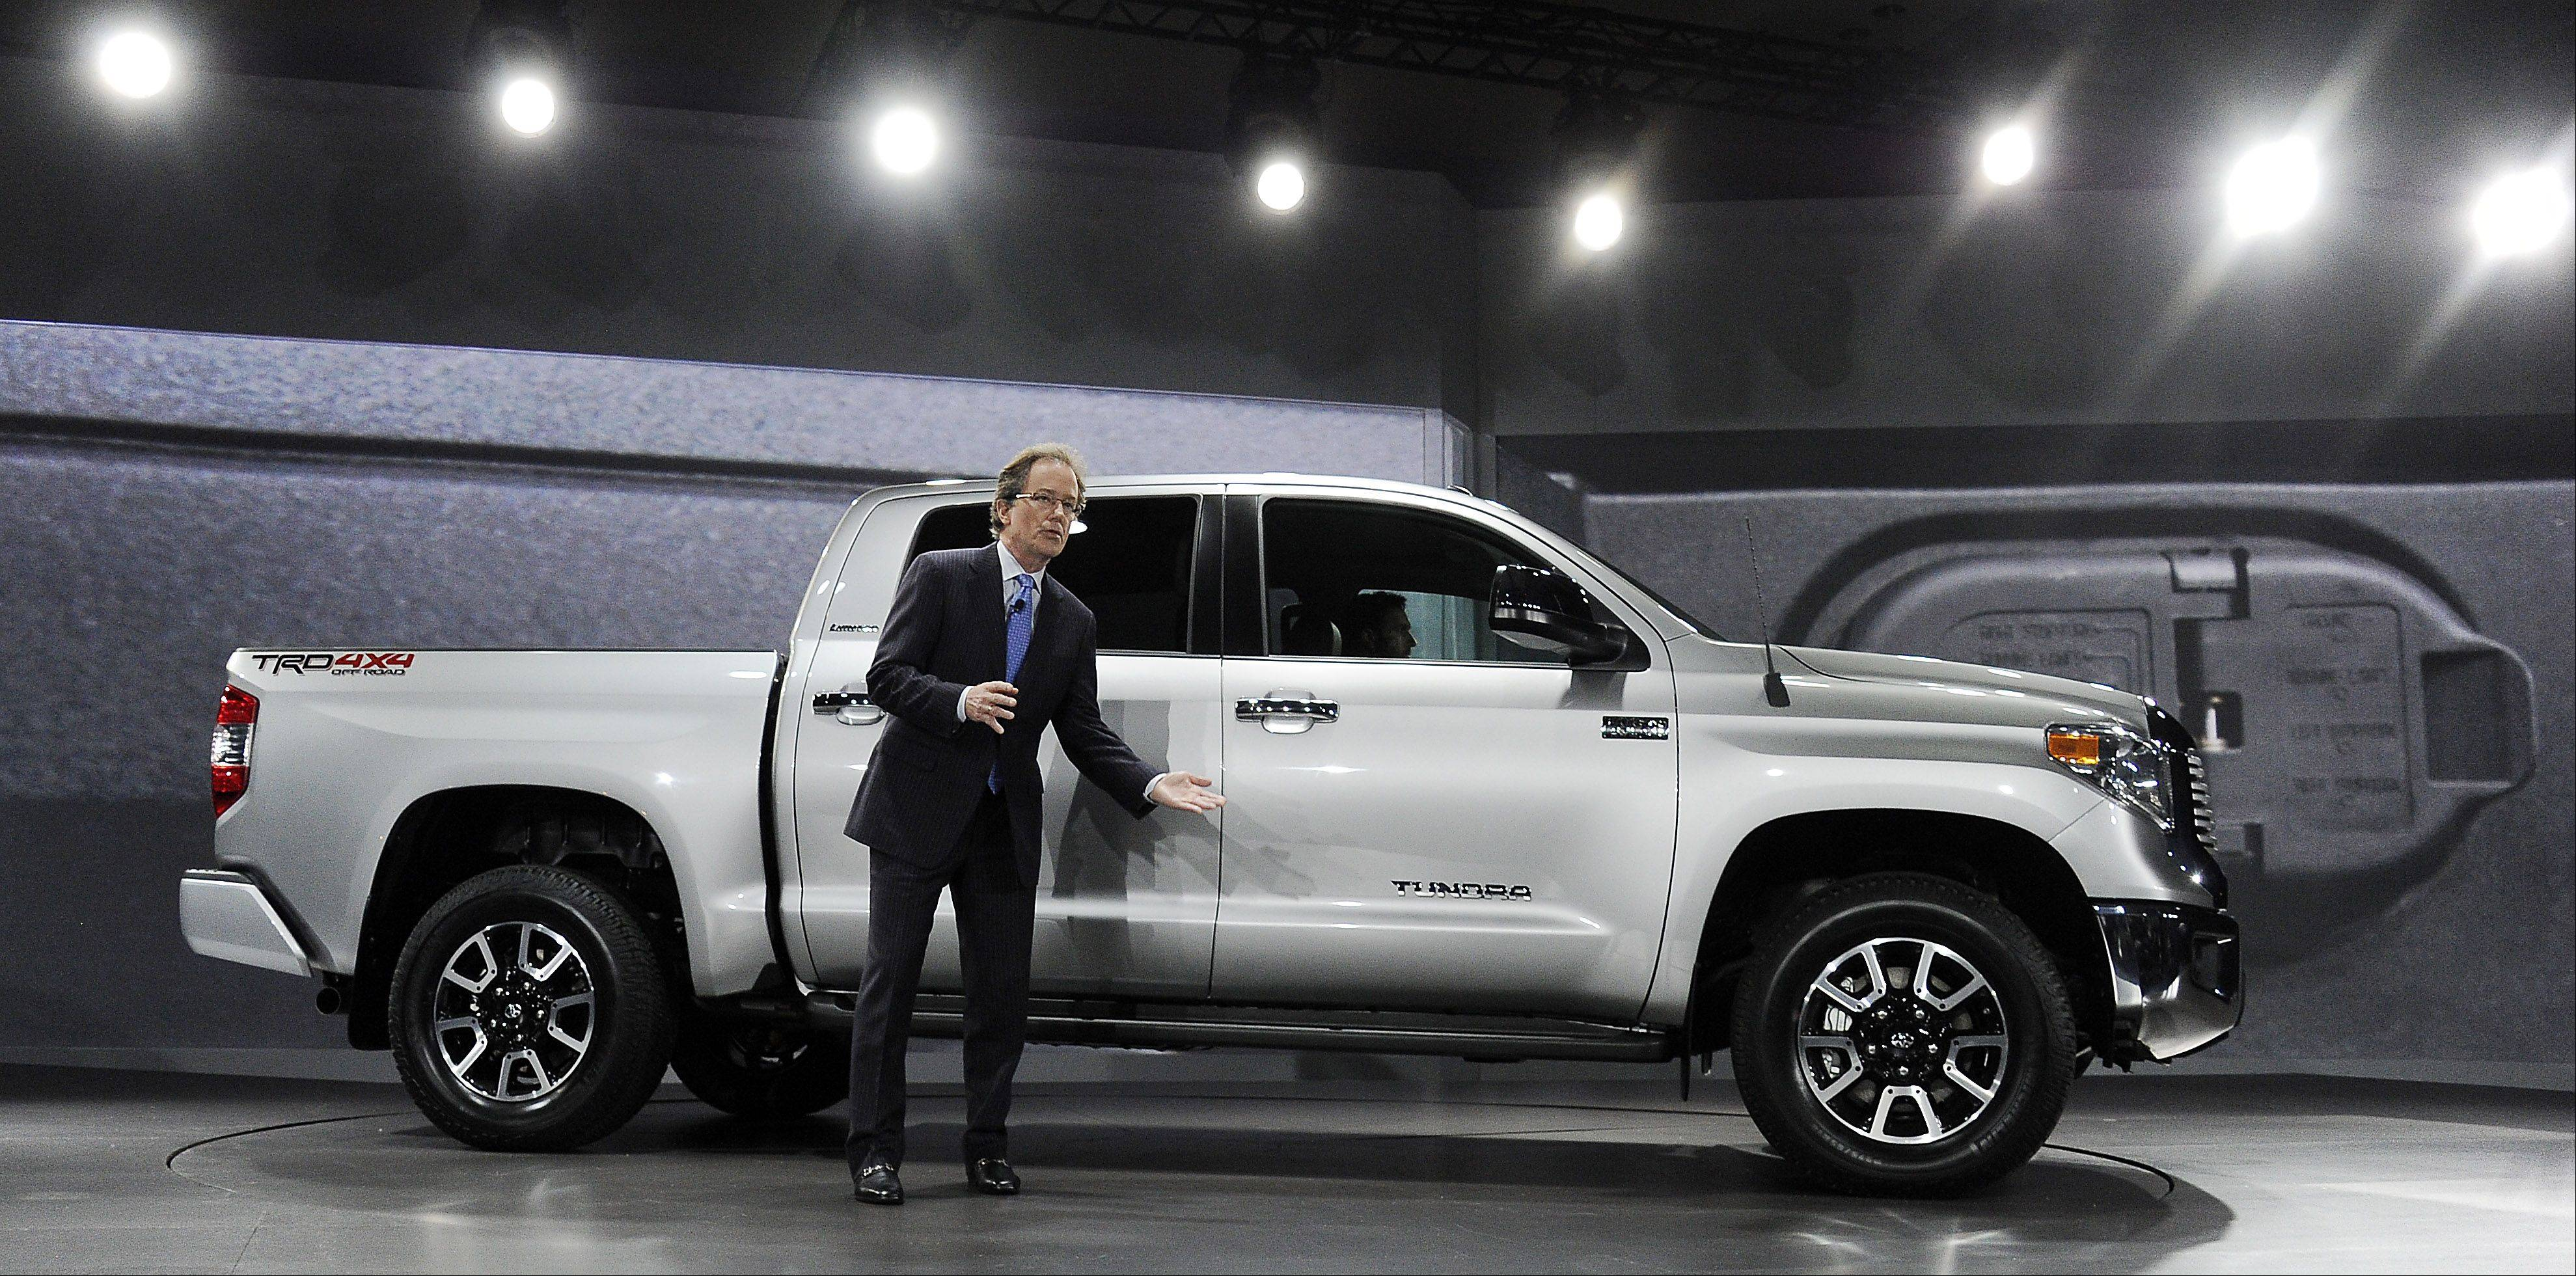 Bill Fay, Group Vice President and General Manager at Toyota shows off the new Tundra 4x4 truck .